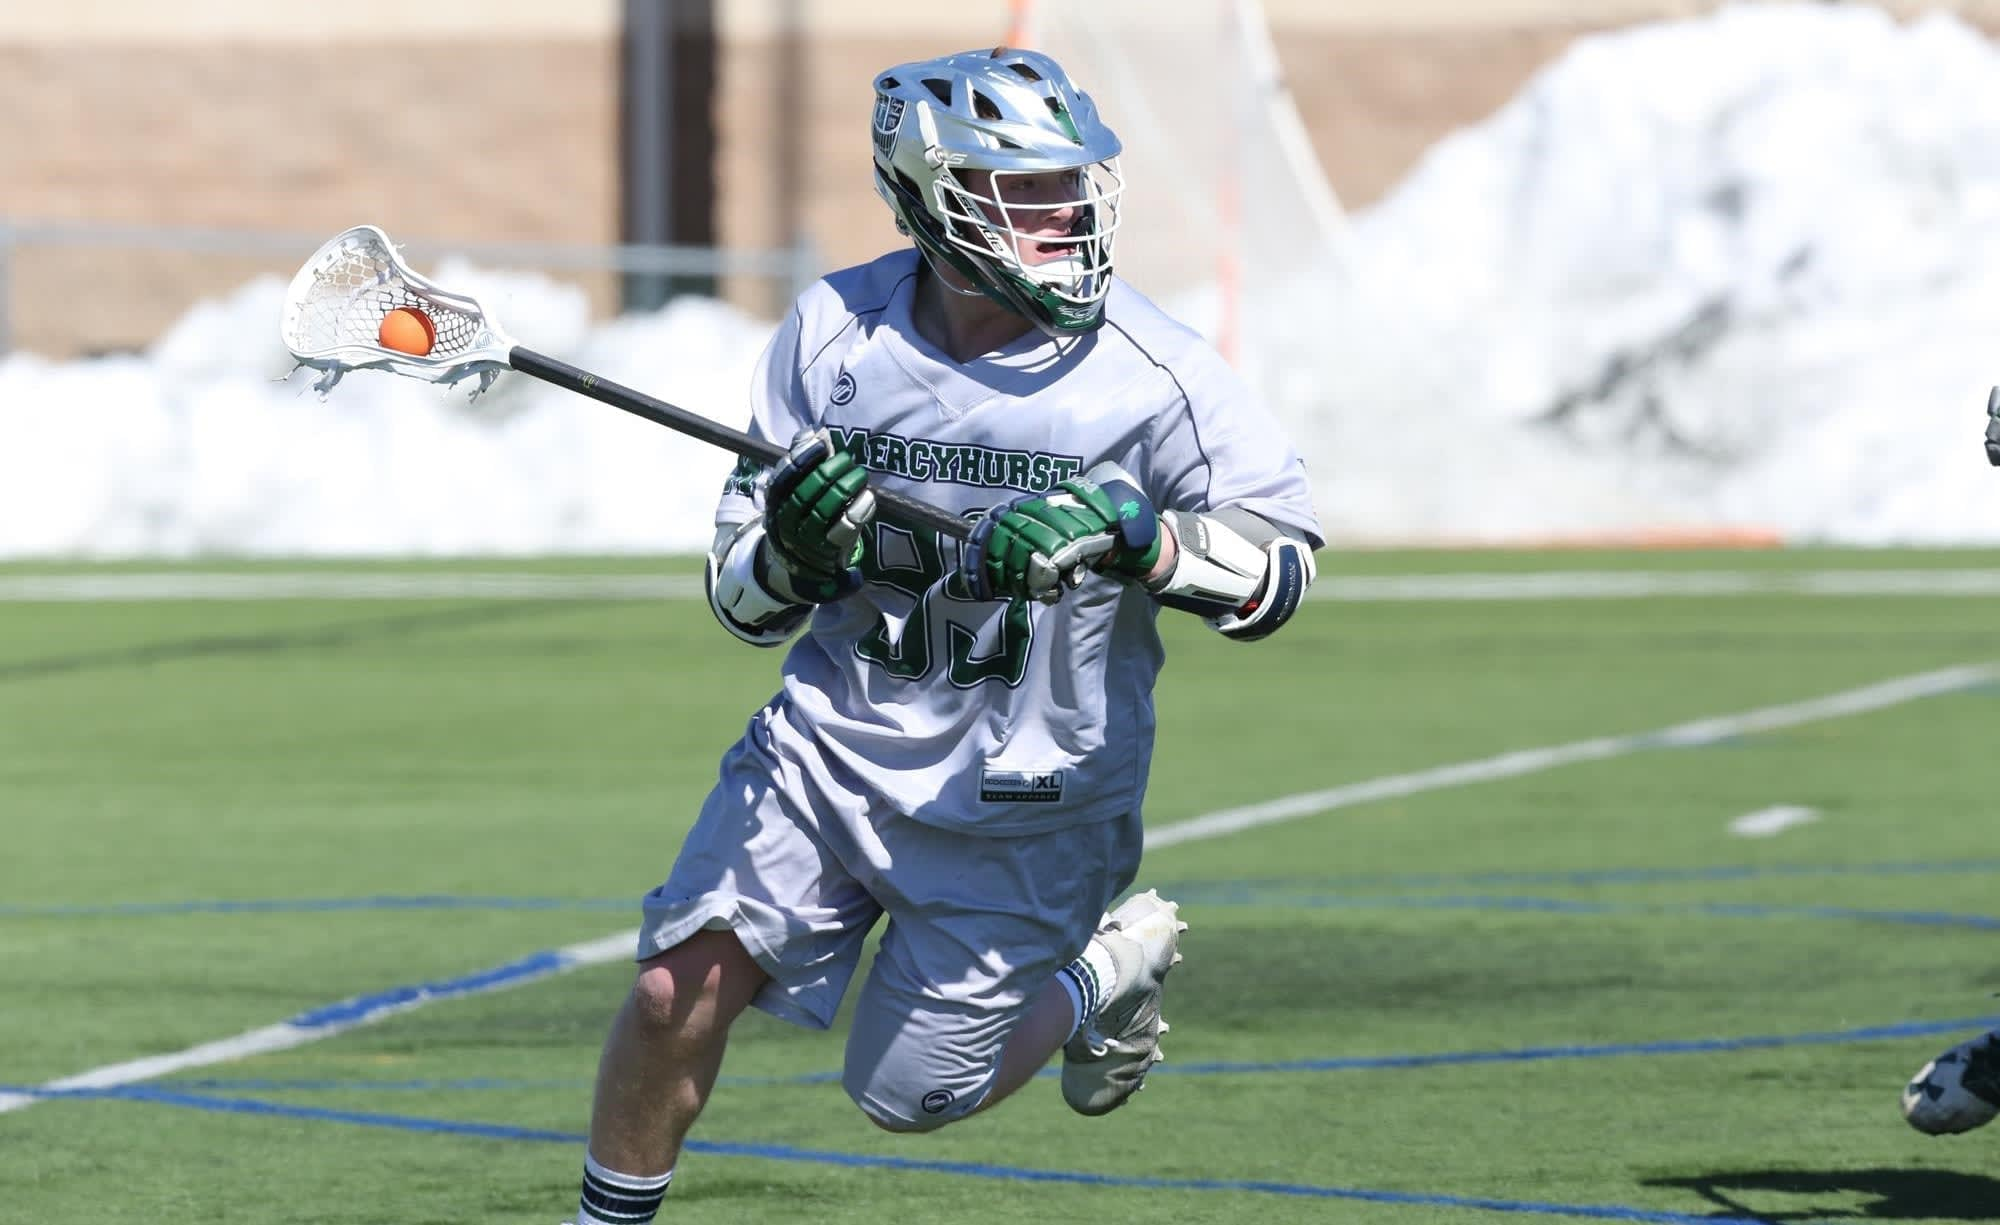 The NE10 and SSC are back as Division II men's lacrosse is really getting into full swing, and Newberry picked up a big win this week.